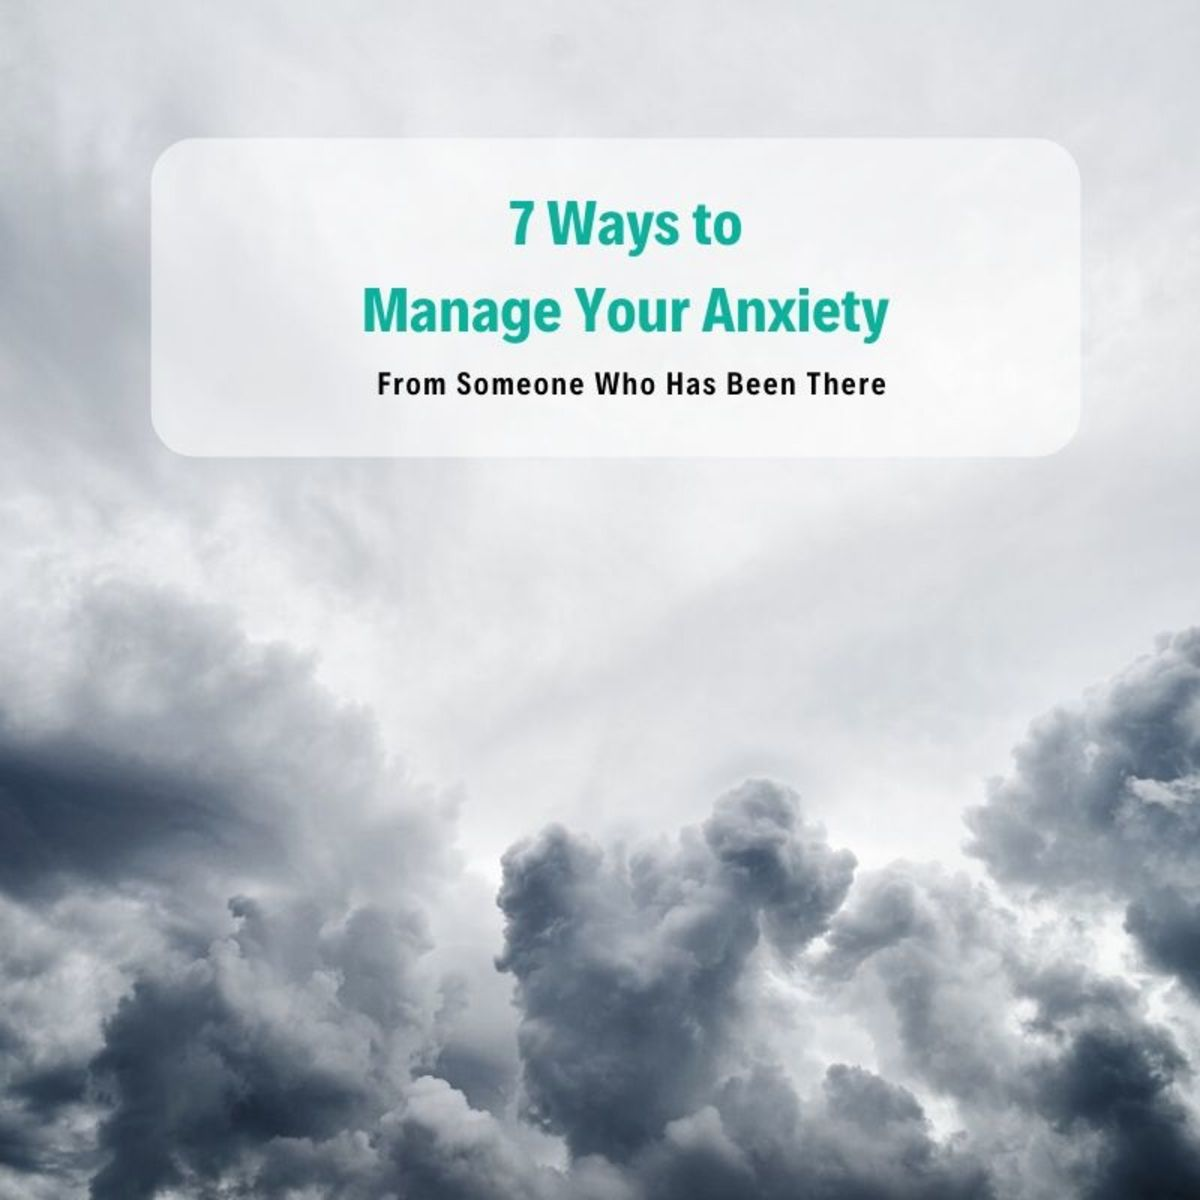 Anxiety can feel like clouds are always hanging over you.